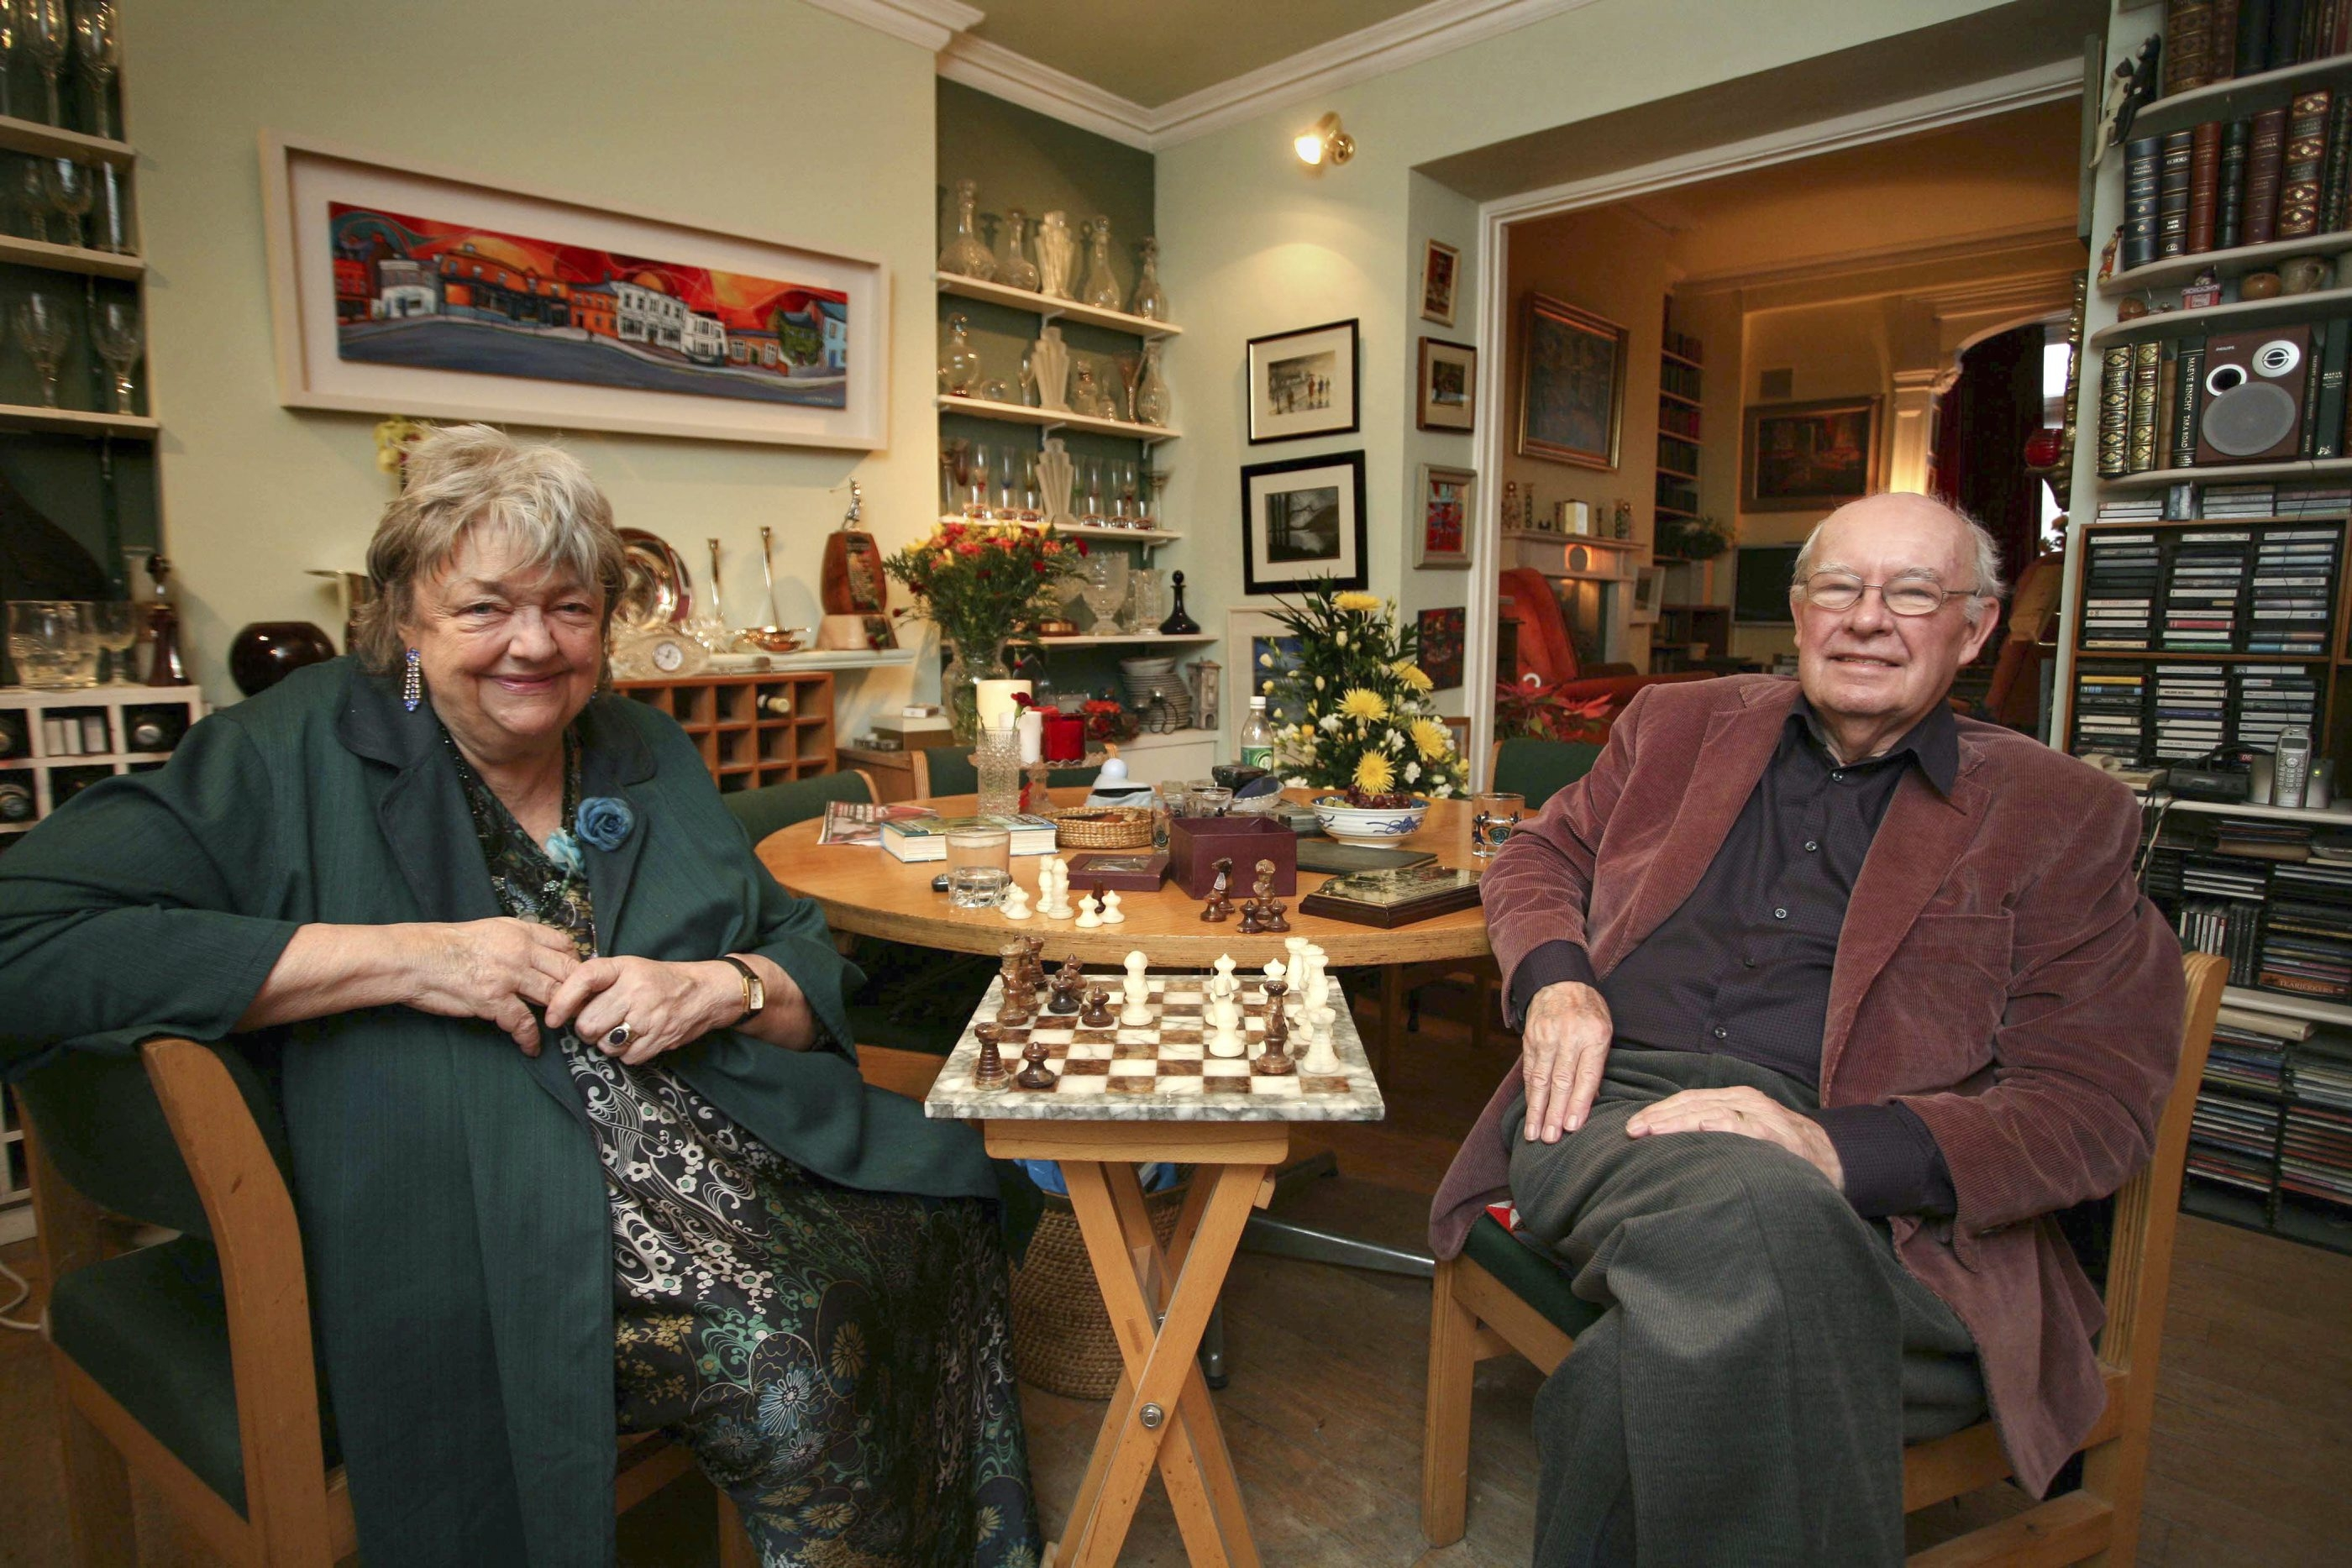 Maeve Binchy, left, is pictured with Gordon Snell at their home in Dalkey, Ireland, on Jan. 31, 2009. Binchy, a newspaperwoman turned best-selling author whose sprawling novels of Ireland portrayed women confronting all manner of adversity, died July 30, 2012, in Dublin at age 72.